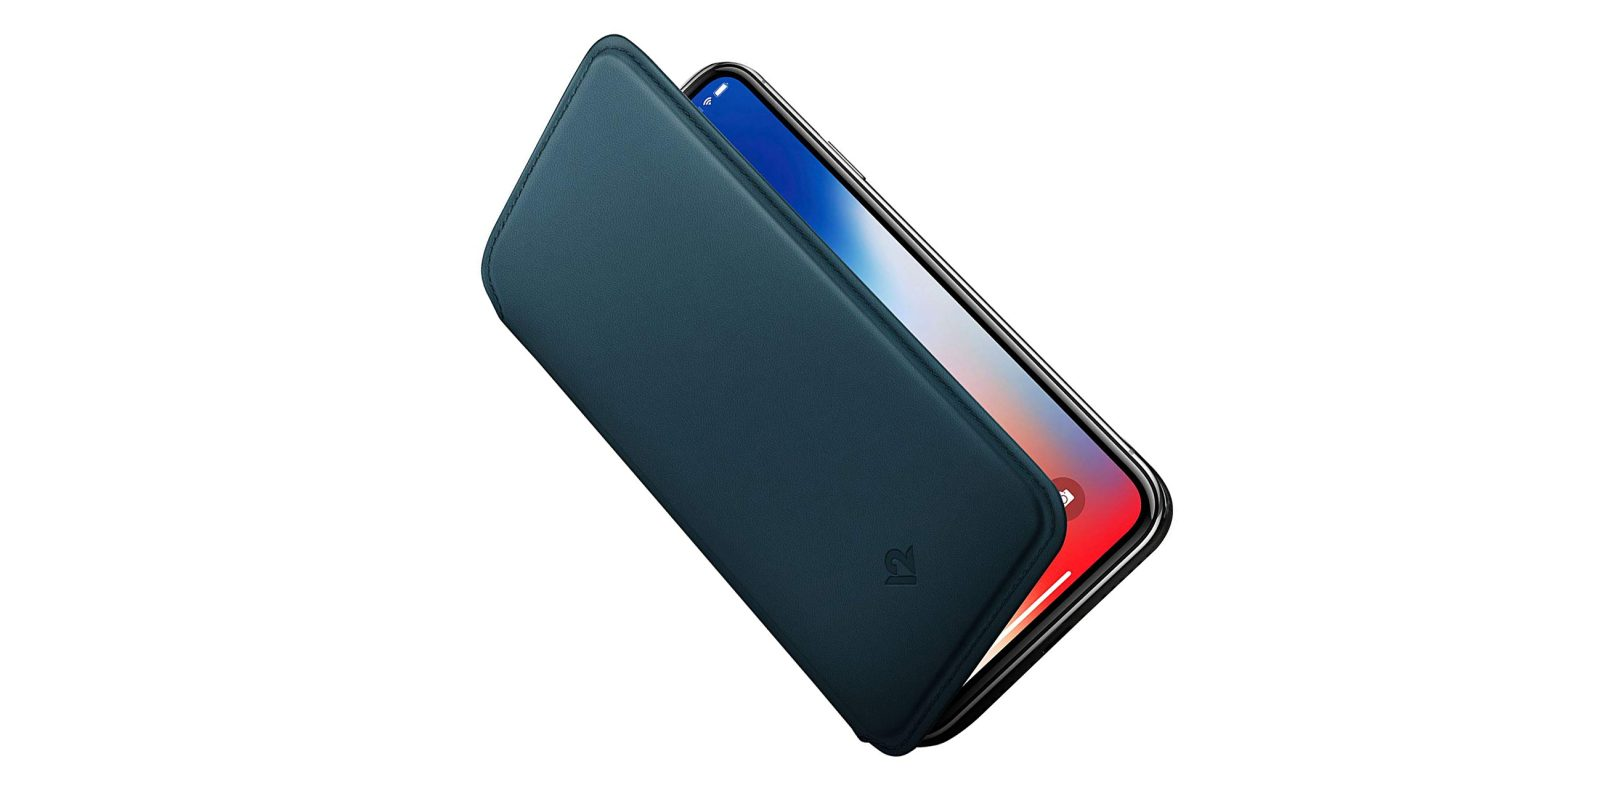 best service c7247 9f479 The Twelve South Surface Pad for iPhone X on sale at Amazon for $44 ...